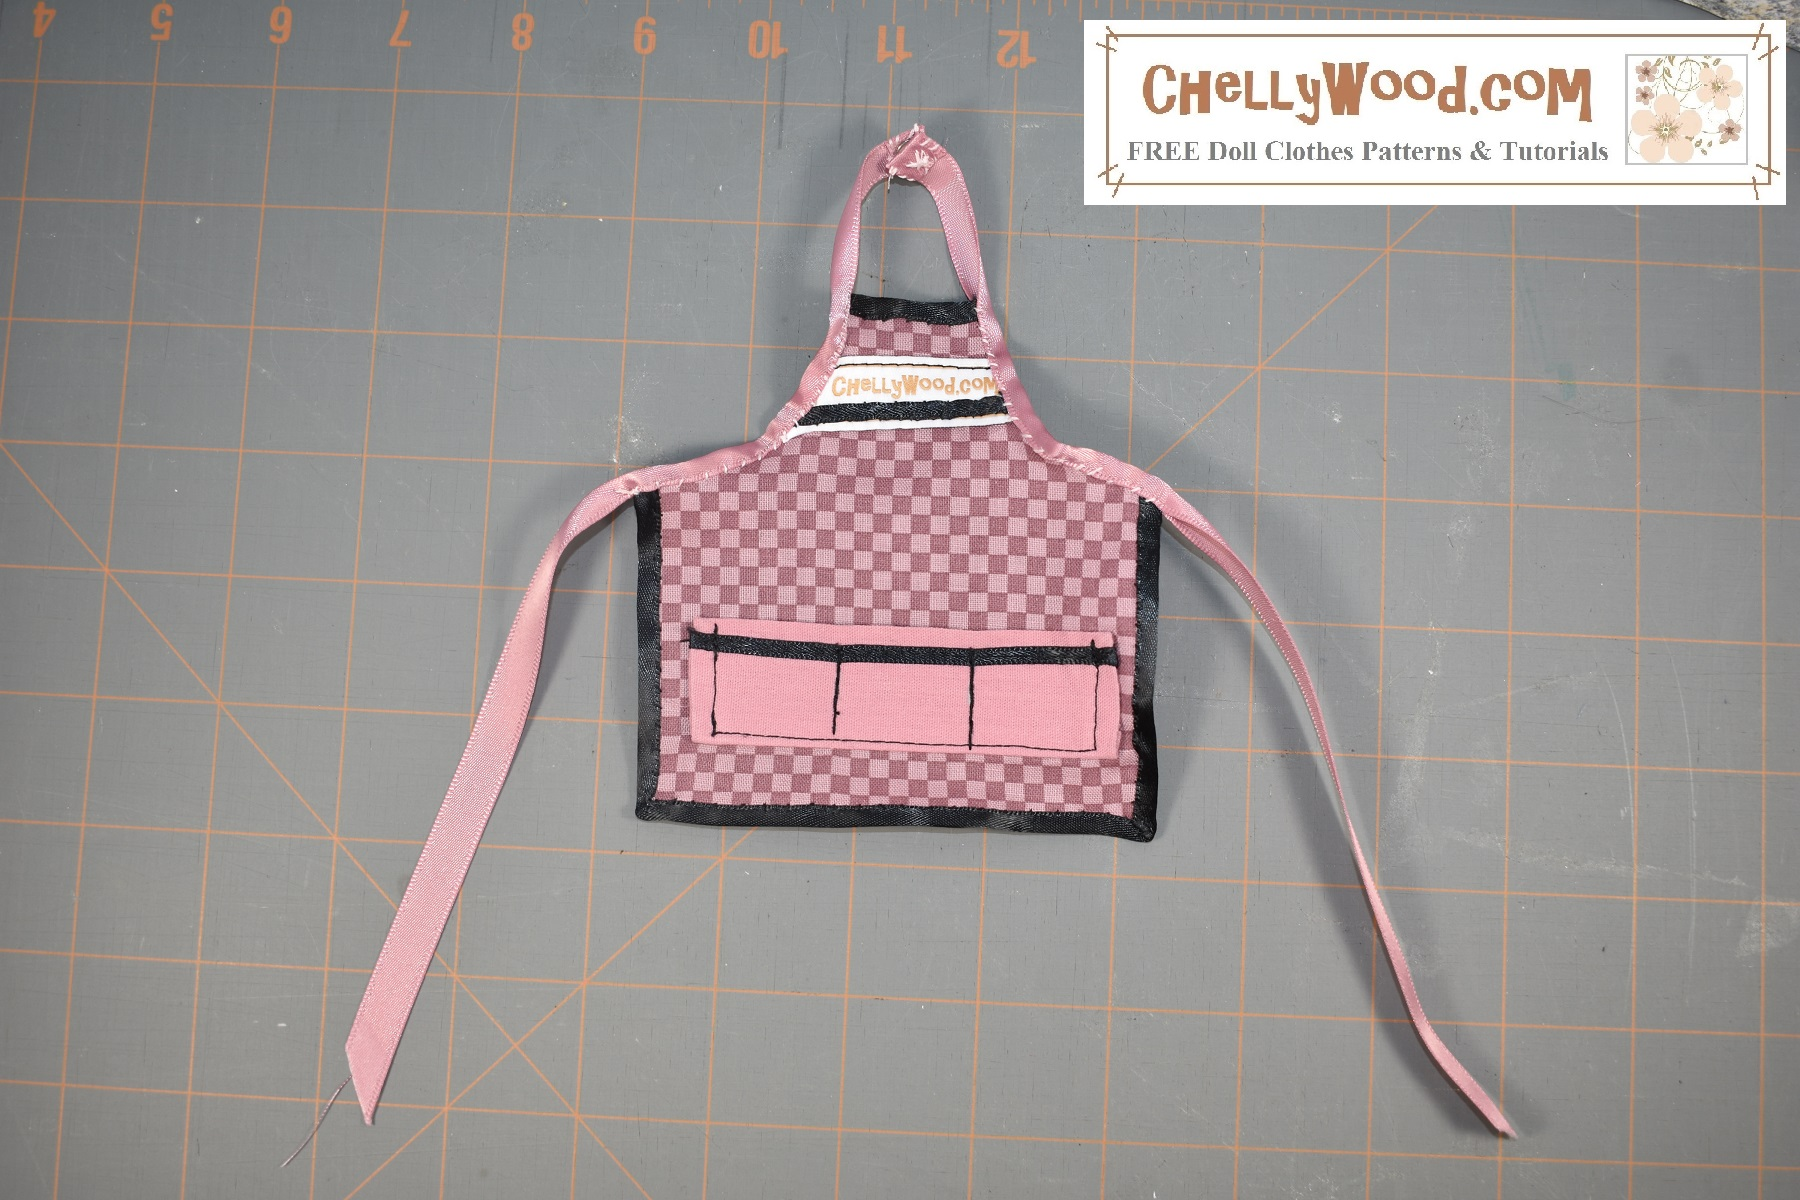 This image shows a handmade apron for 11 to 12 inch fashion dolls like Barbie, Liv Dolls, Queens of Africa and Poppy Parker. The apron has three front pockets, a ribbon that ties the apron in the back, and a snap closure at the neck of the apron. The fabric of the apron is a pink checkerboard while the pockets are a solid pink fabric. Visit ChellyWood.com for the free printable sewing pattern and tutorial video showing how to make this doll clothes sewing project using our free printable PDF sewing pattern.